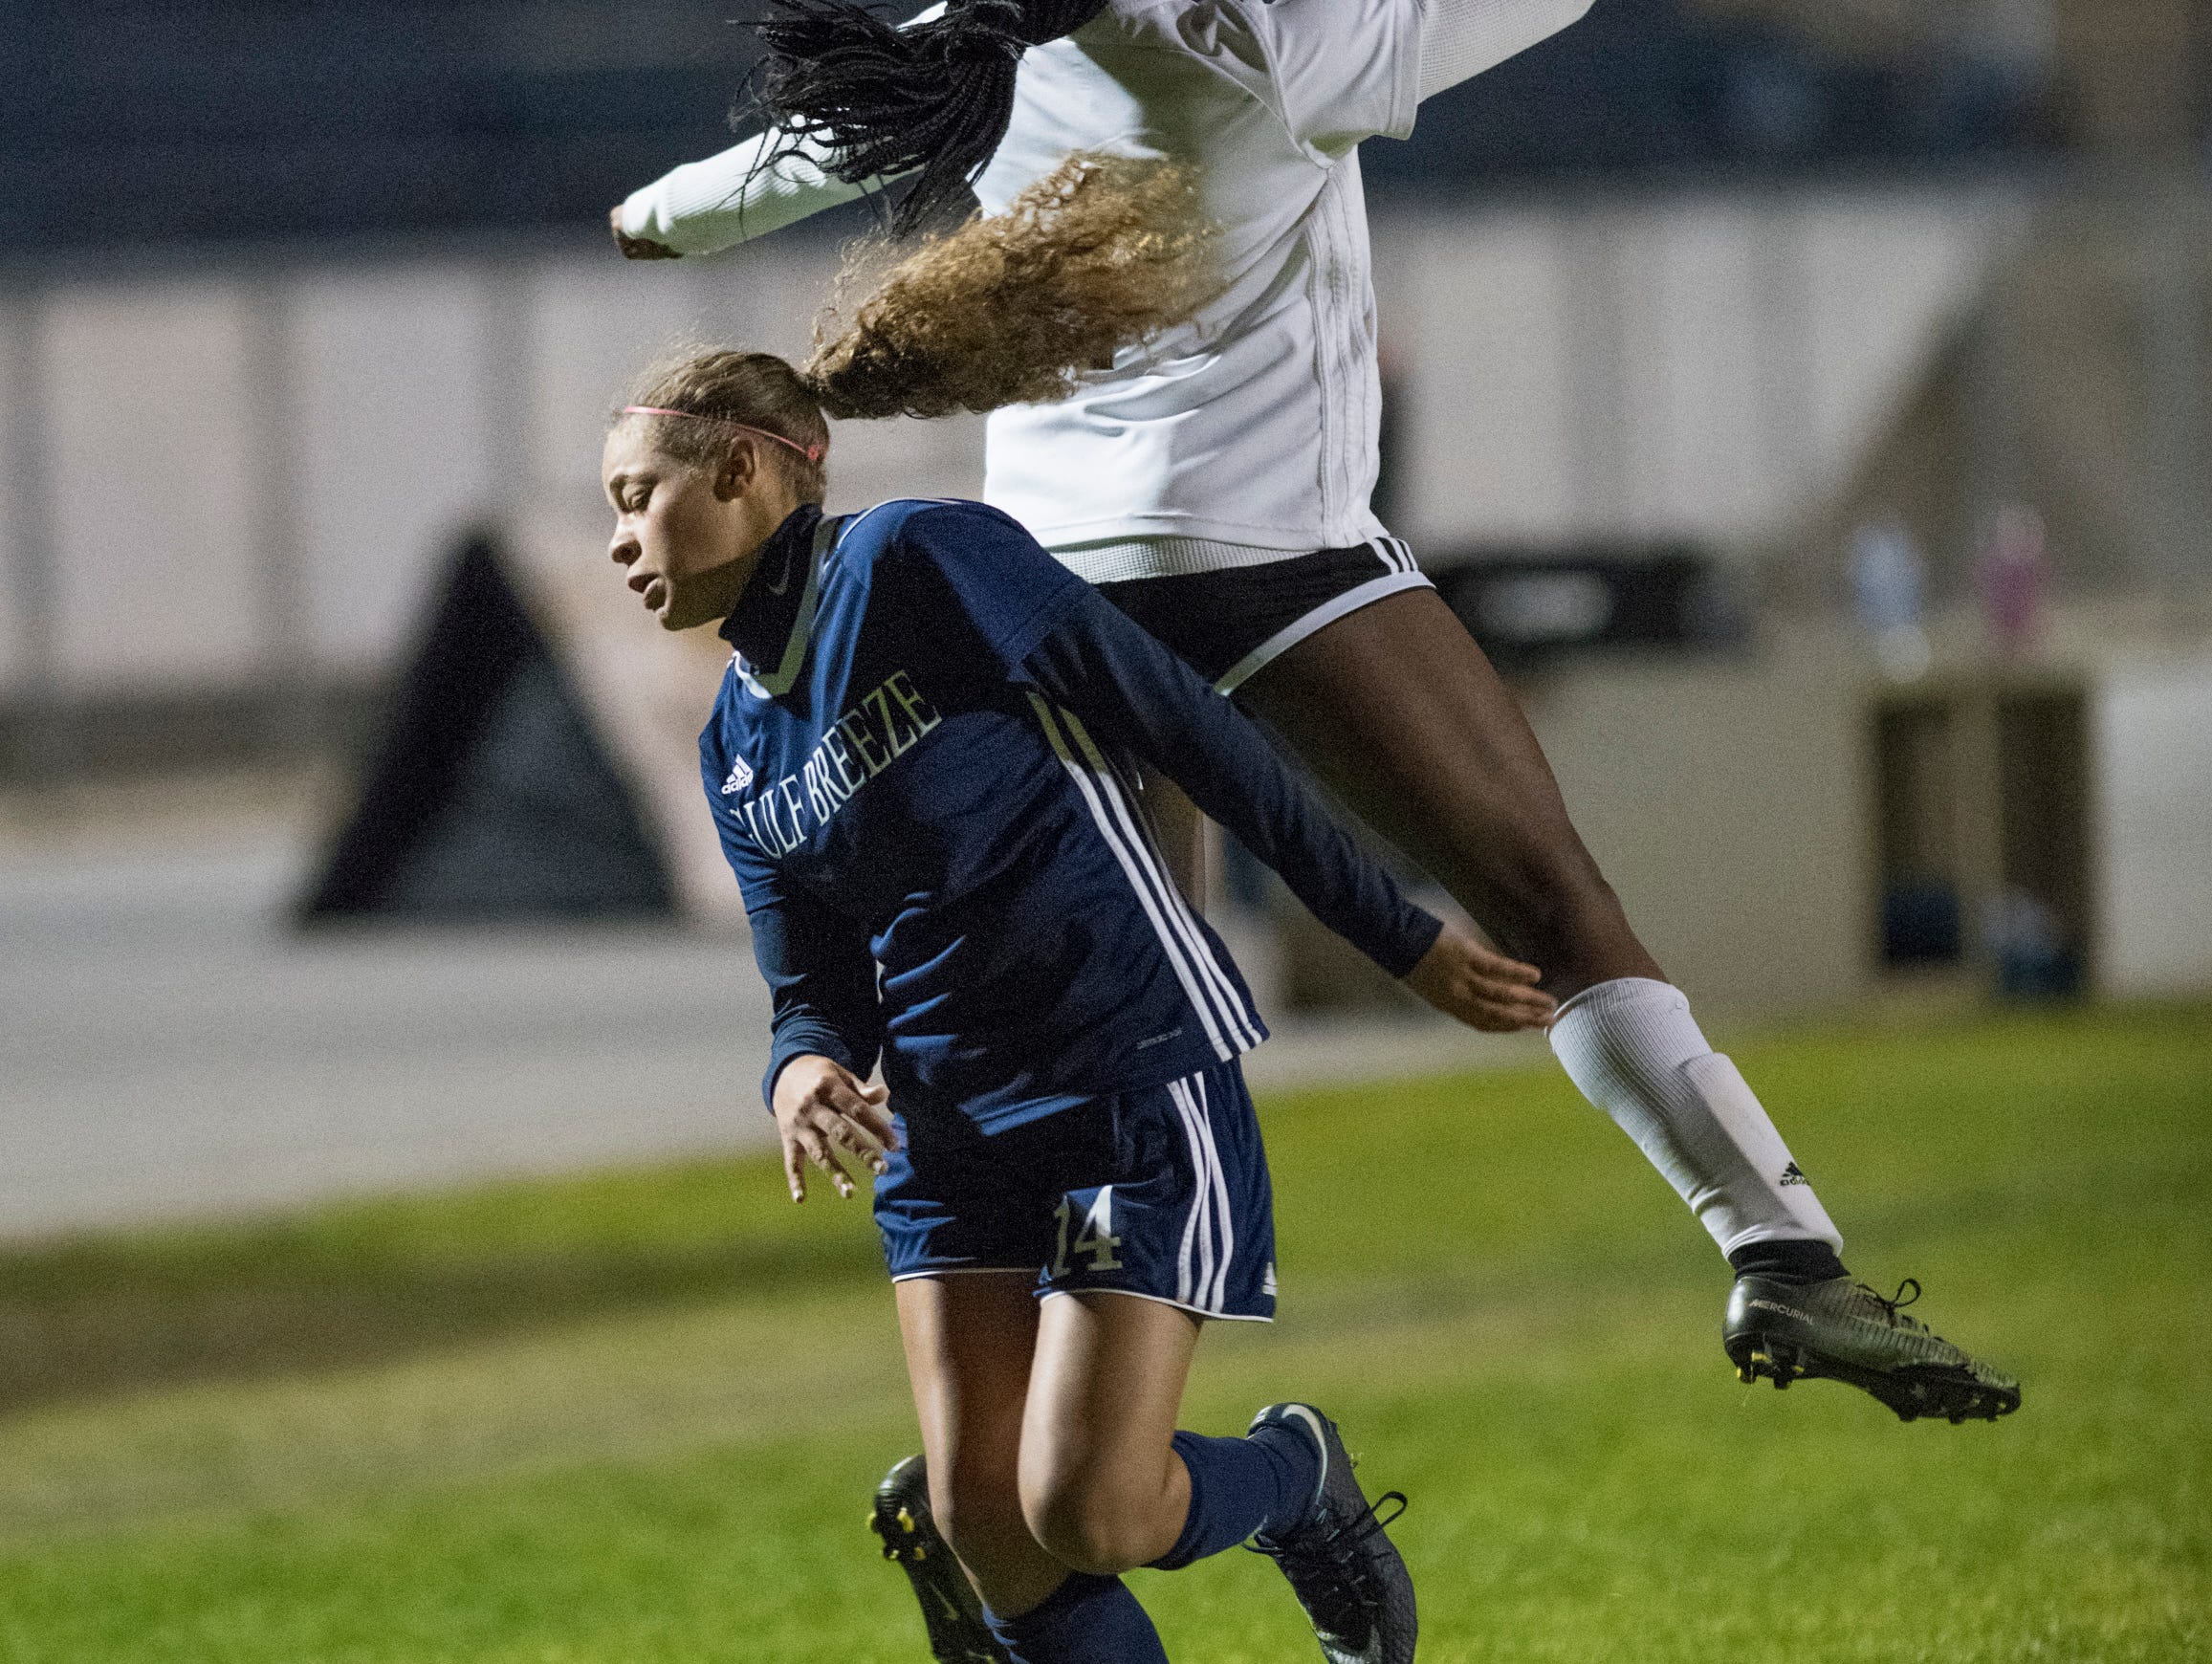 Aiyannah Robinson (14) and Kywana Donahoo (1) fight for the ball during the Niceville vs Gulf Breeze soccer game at Gulf Breeze High School on Thursday, January 10, 2019.